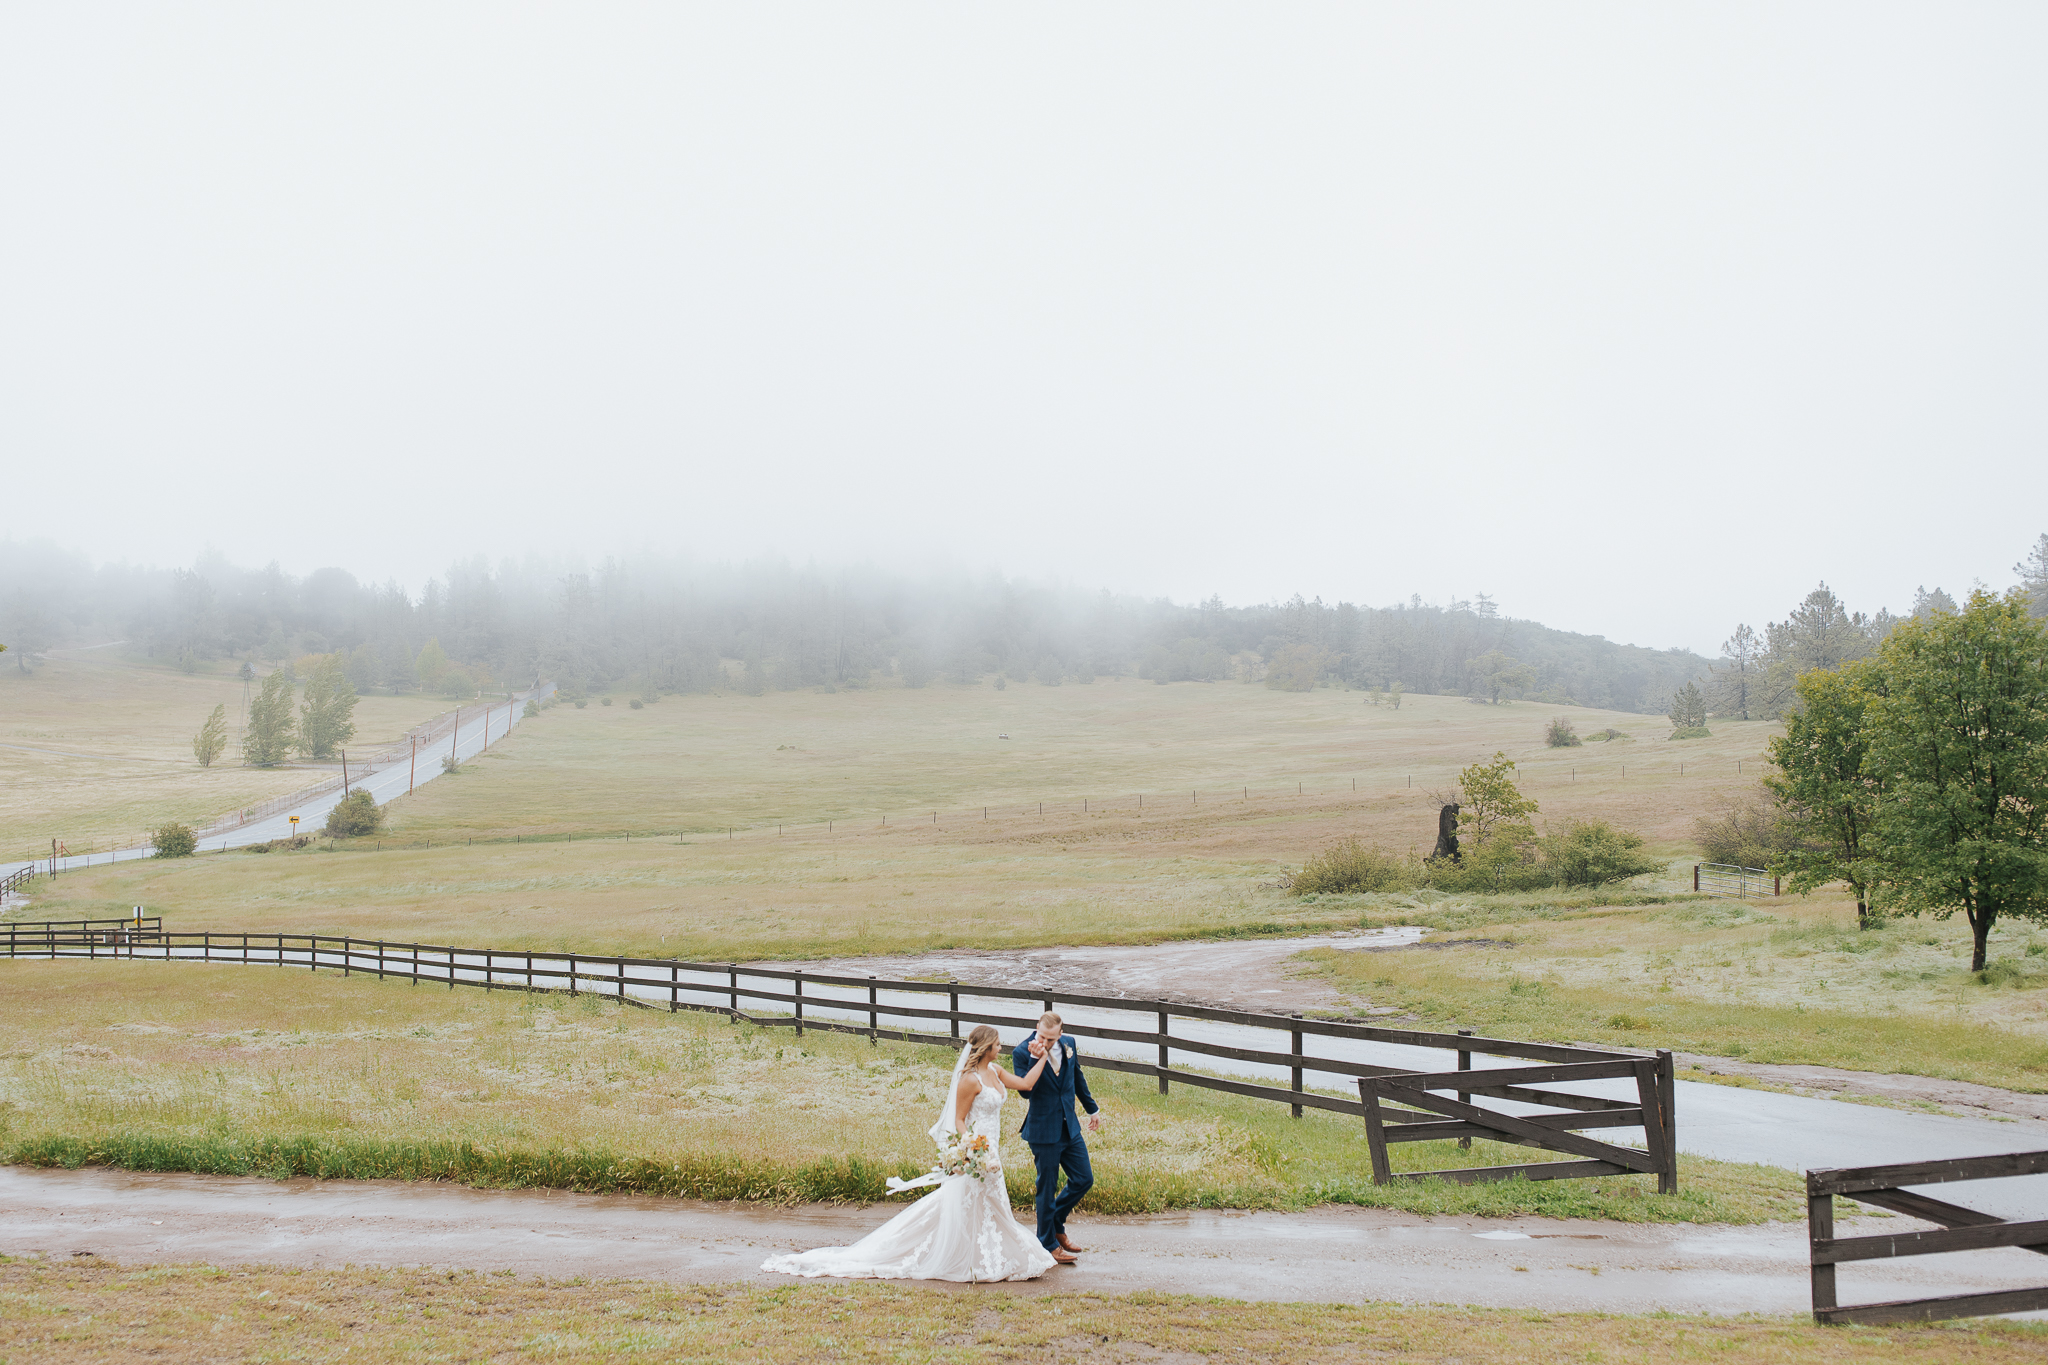 _makennabryleephotography (45 of 50).jpg